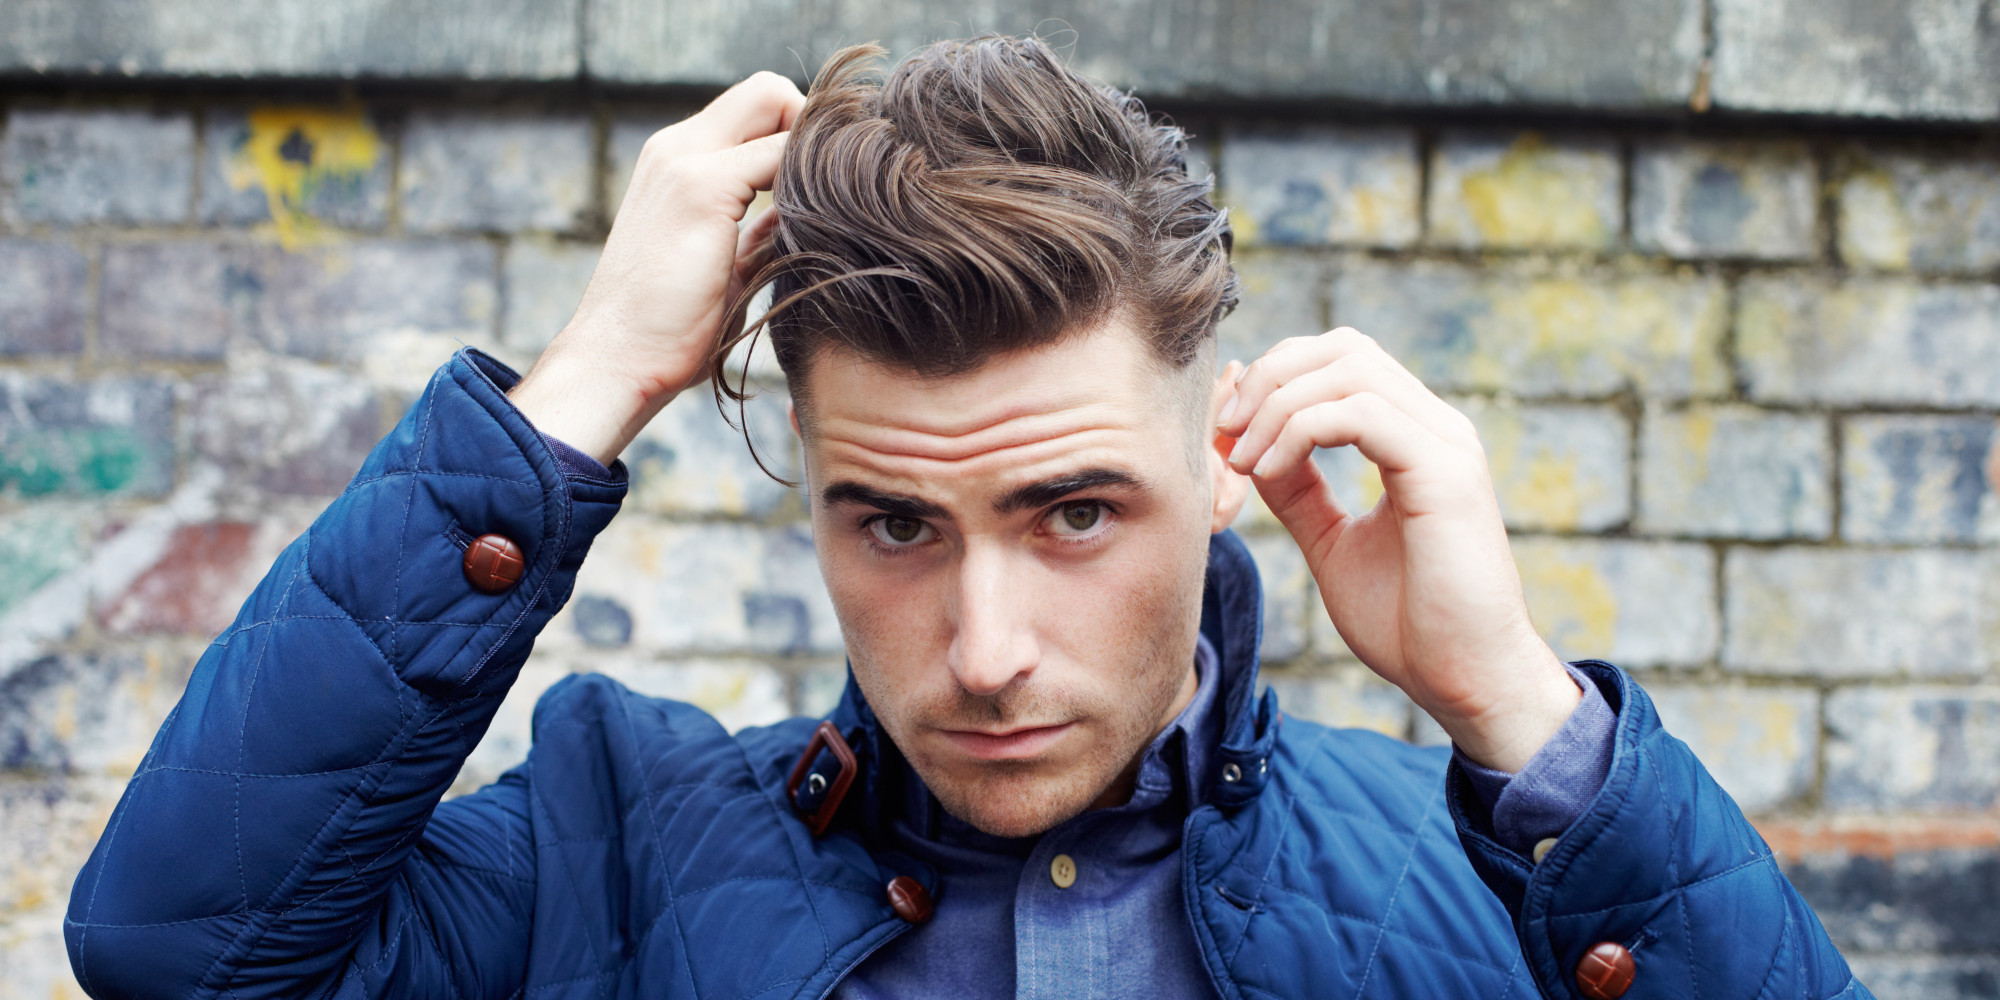 New study reveals that men are more narcissistic than women